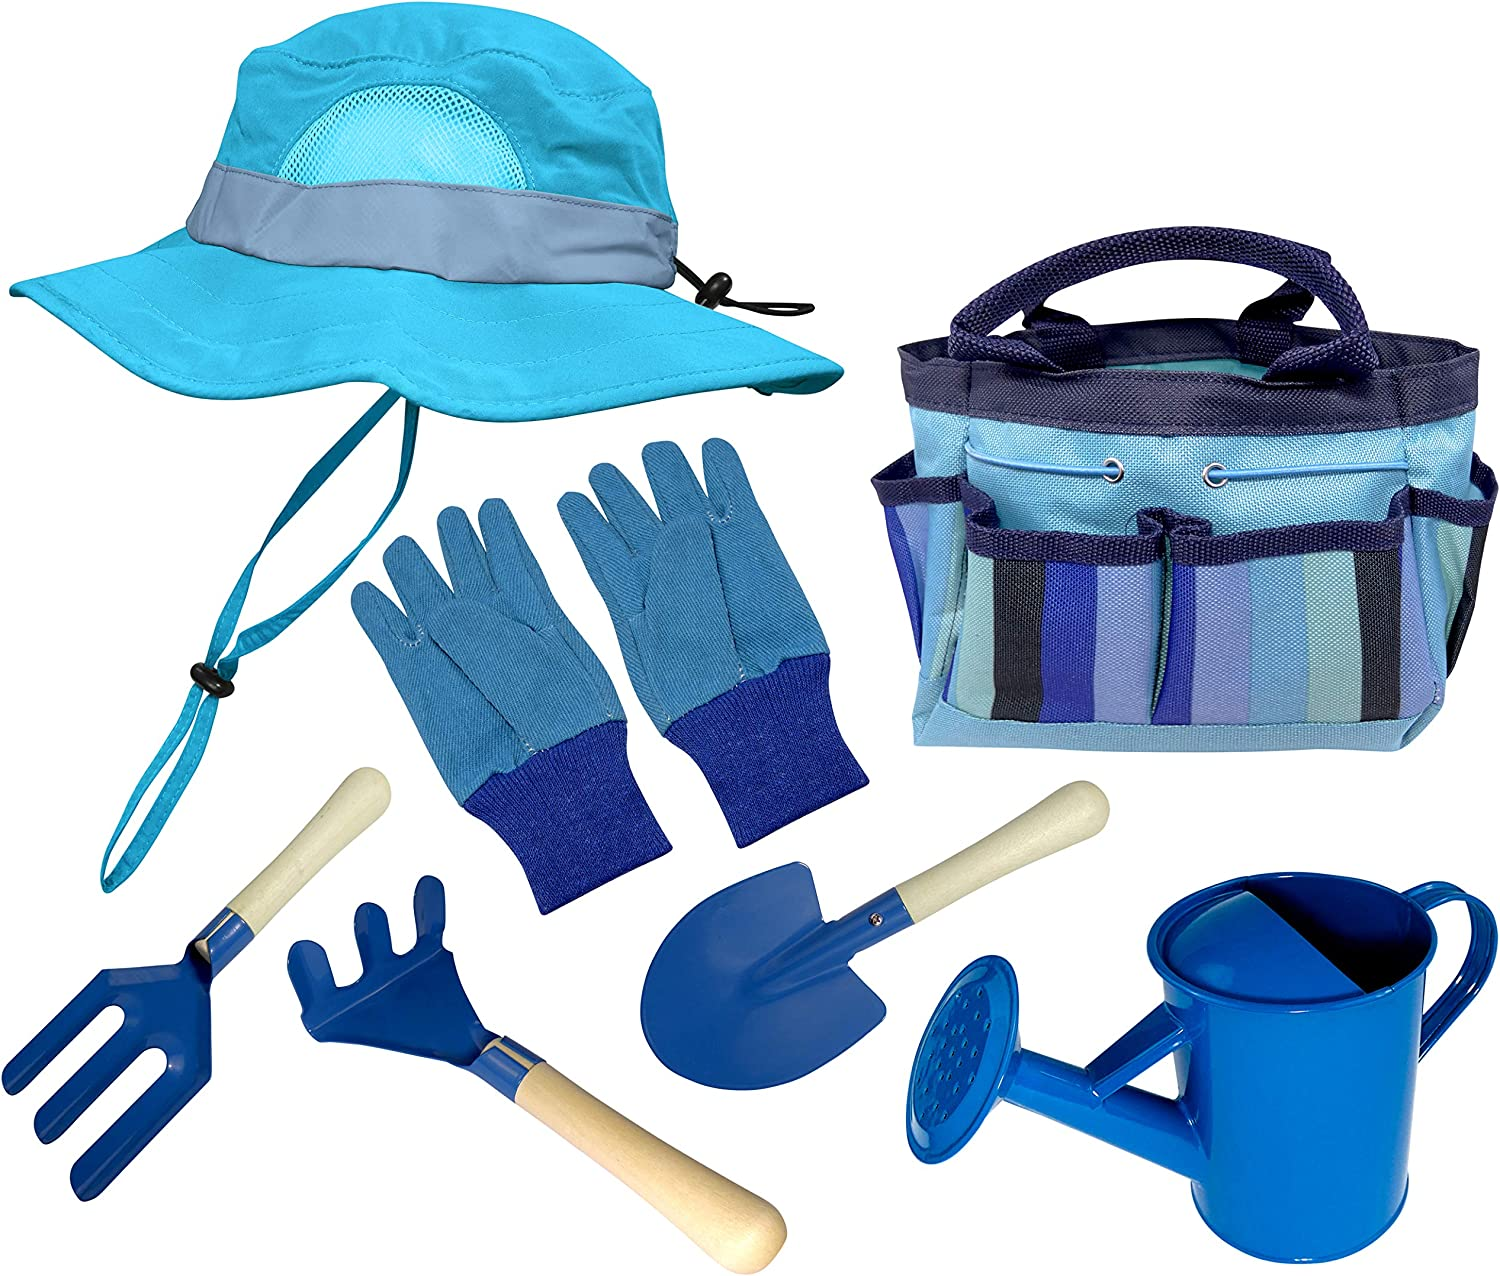 KidsGarden Set &BucketHat Combo:Real Metal Tools & Wooden Handles; Shovel, Rake & Pitch Fork, Pitcher, Gloves & Carrying Bag.Sure-Fit Adjustable Hat with Chin Strap & Ventilation Panels. Blue S/M